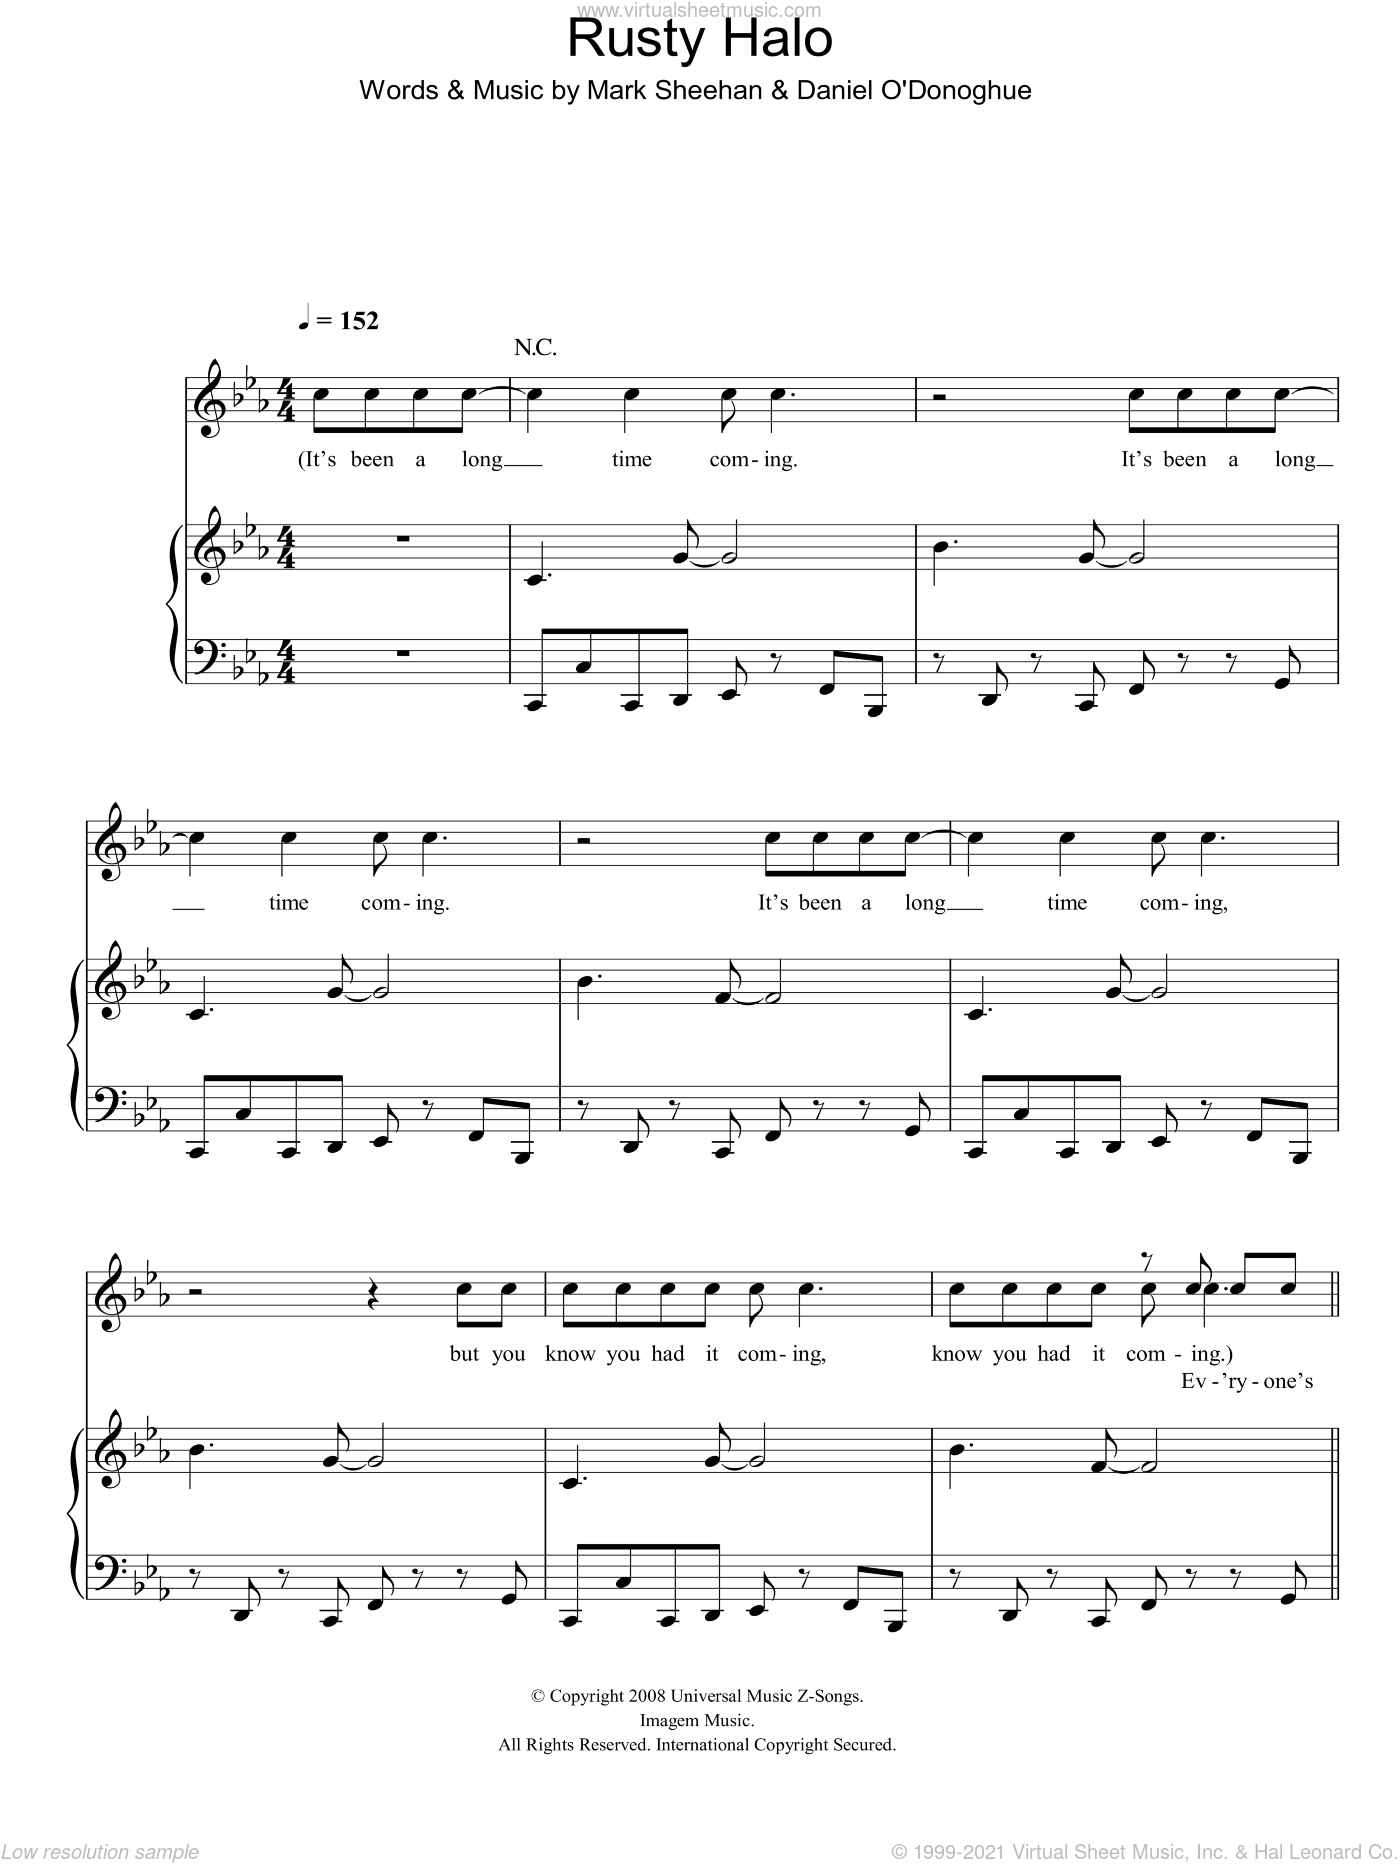 Rusty Halo sheet music for voice, piano or guitar by The Script and Mark Sheehan, intermediate skill level